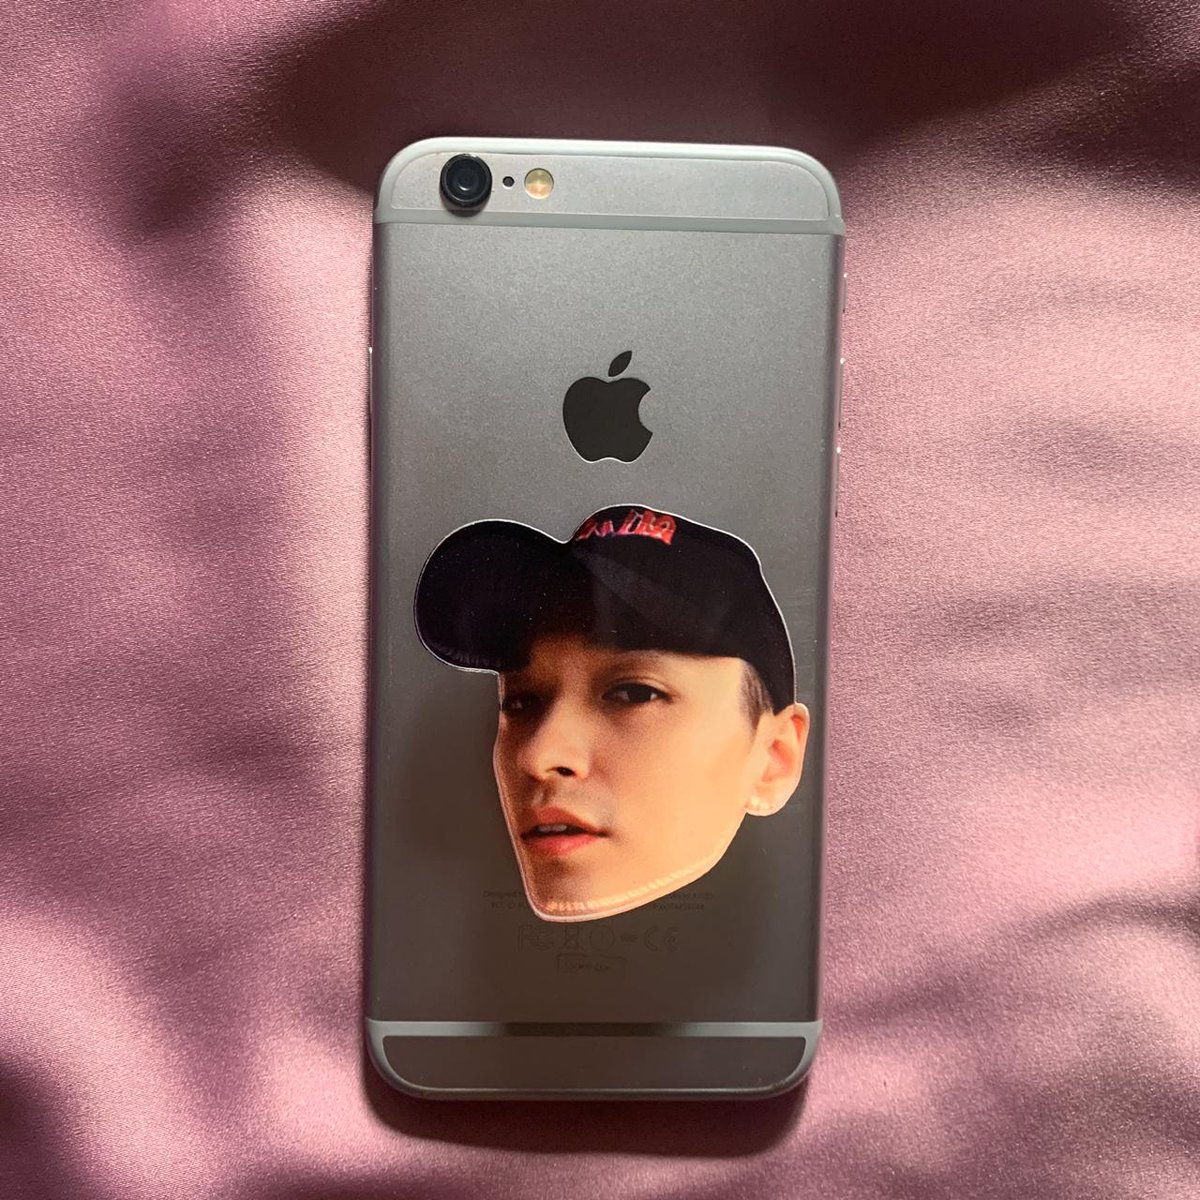 SIMON DOMINIC // GRAY ACRYLIC POPSOCKET  Rp 70.000 each  also available for custom of other KHH artists   #SimonDominic #Gray pic.twitter.com/UJJMWSAEzQ